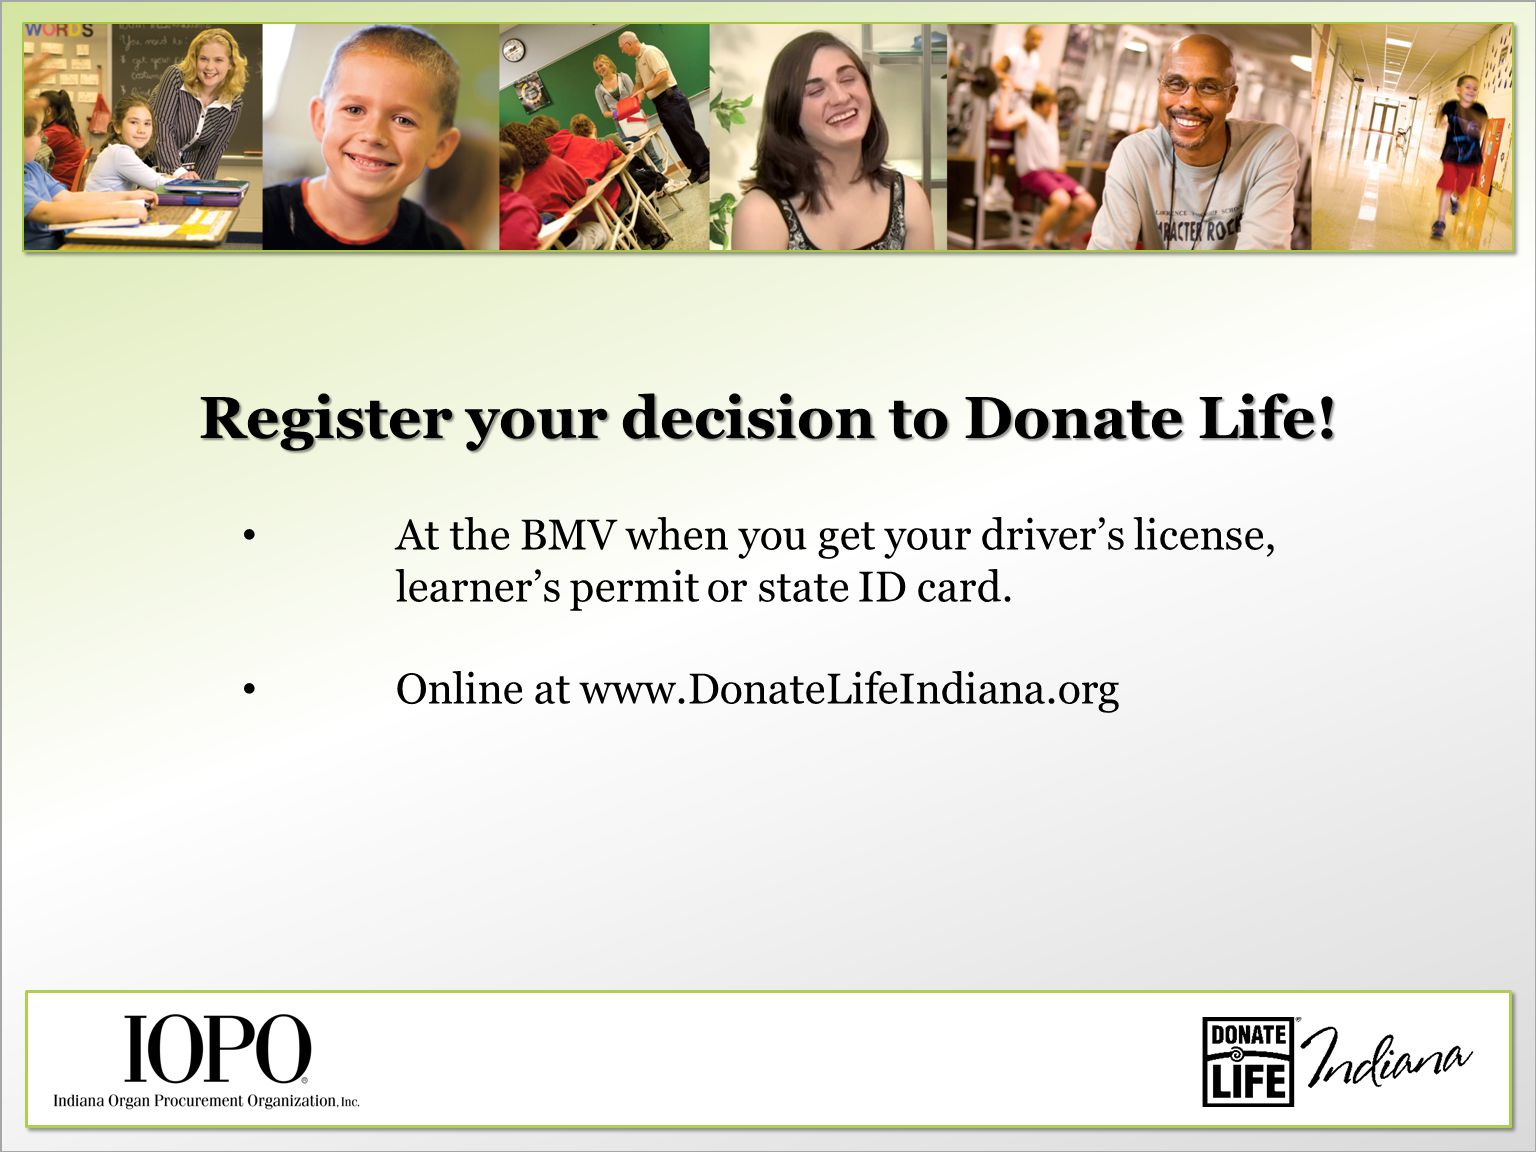 Register your decision to Donate Life.